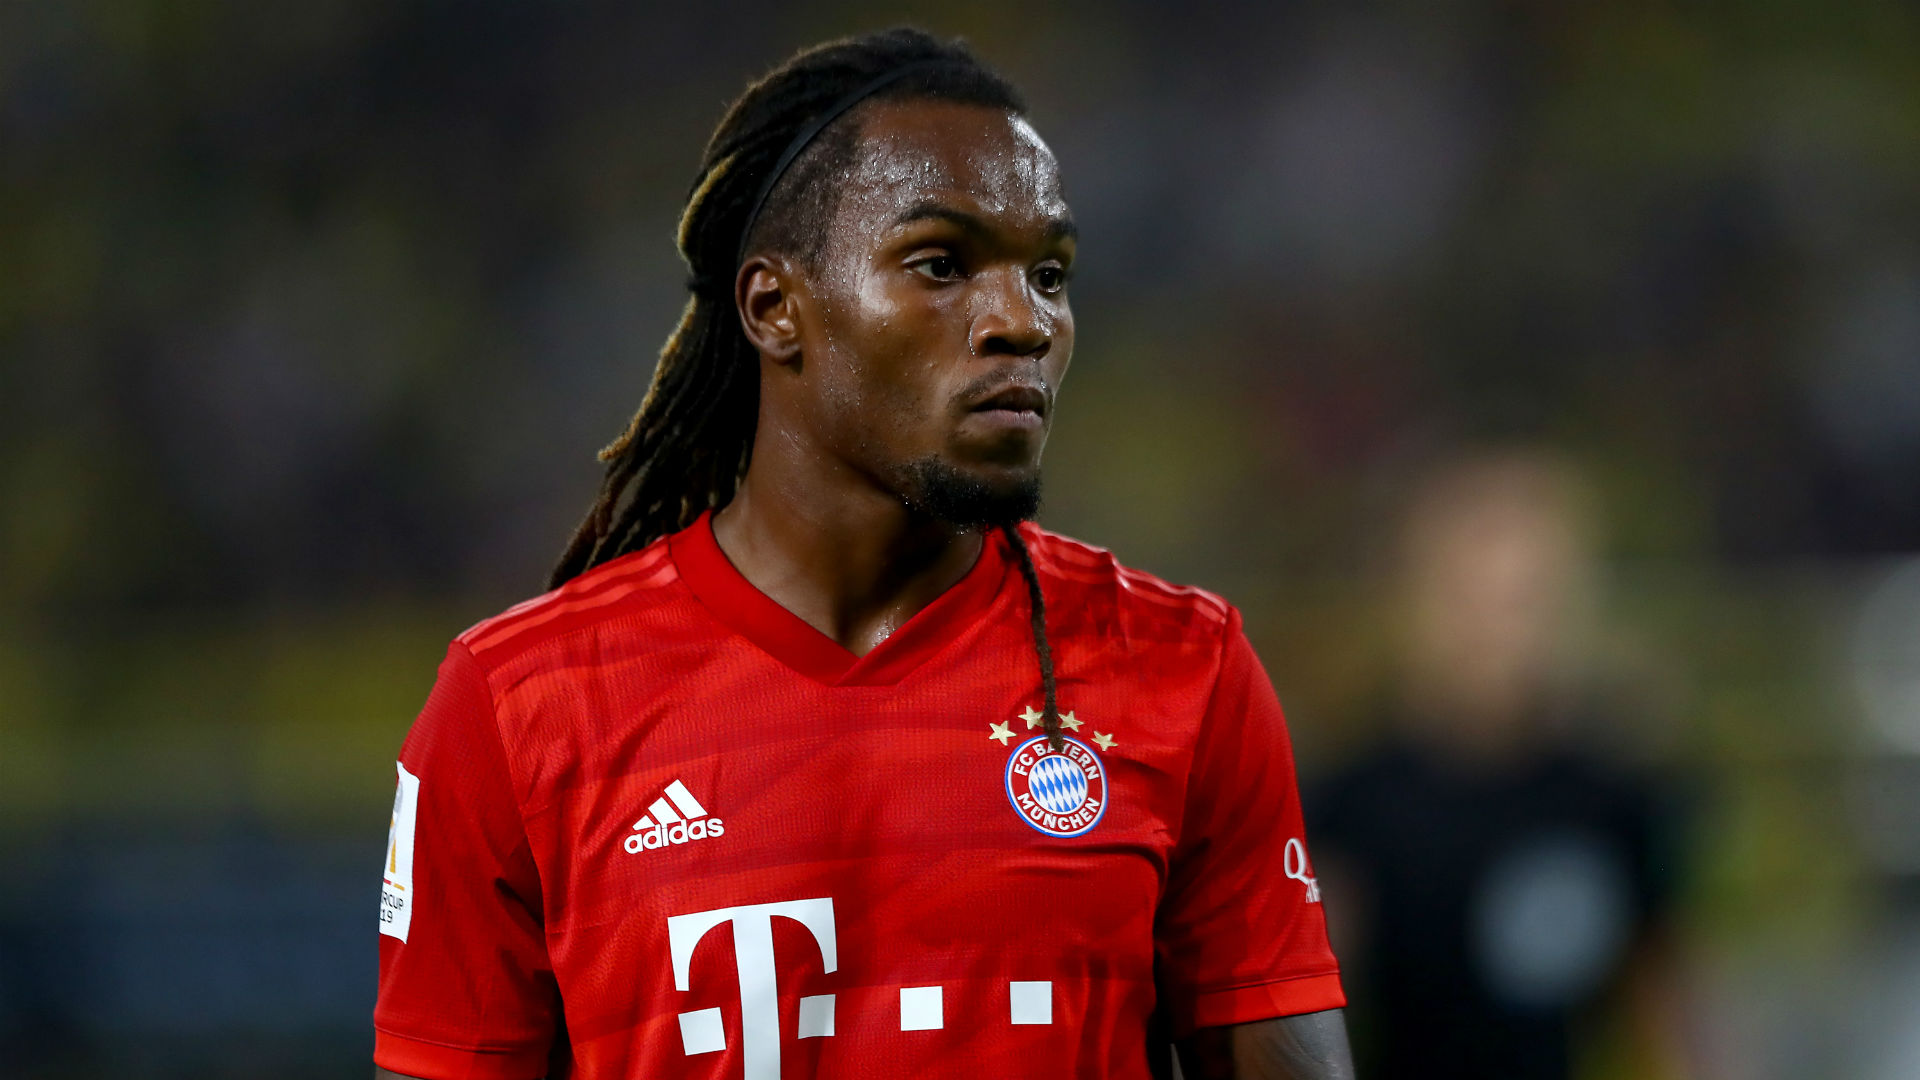 Renato Sanches outburst leaves Bayern director Salihamidzic baffled